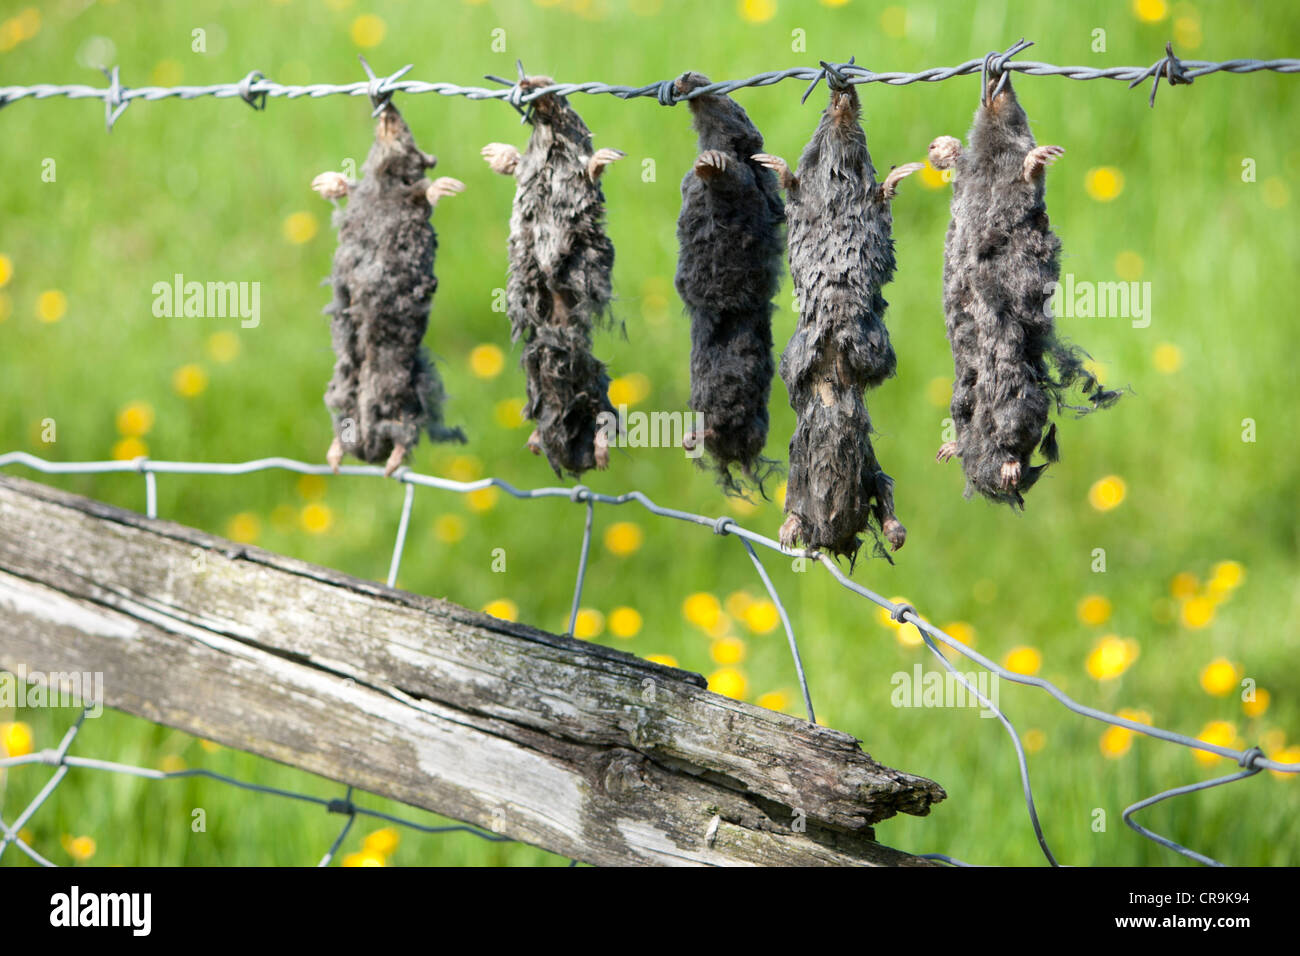 Dead moles hung on barbed wire fence by mole catcher - Stock Image